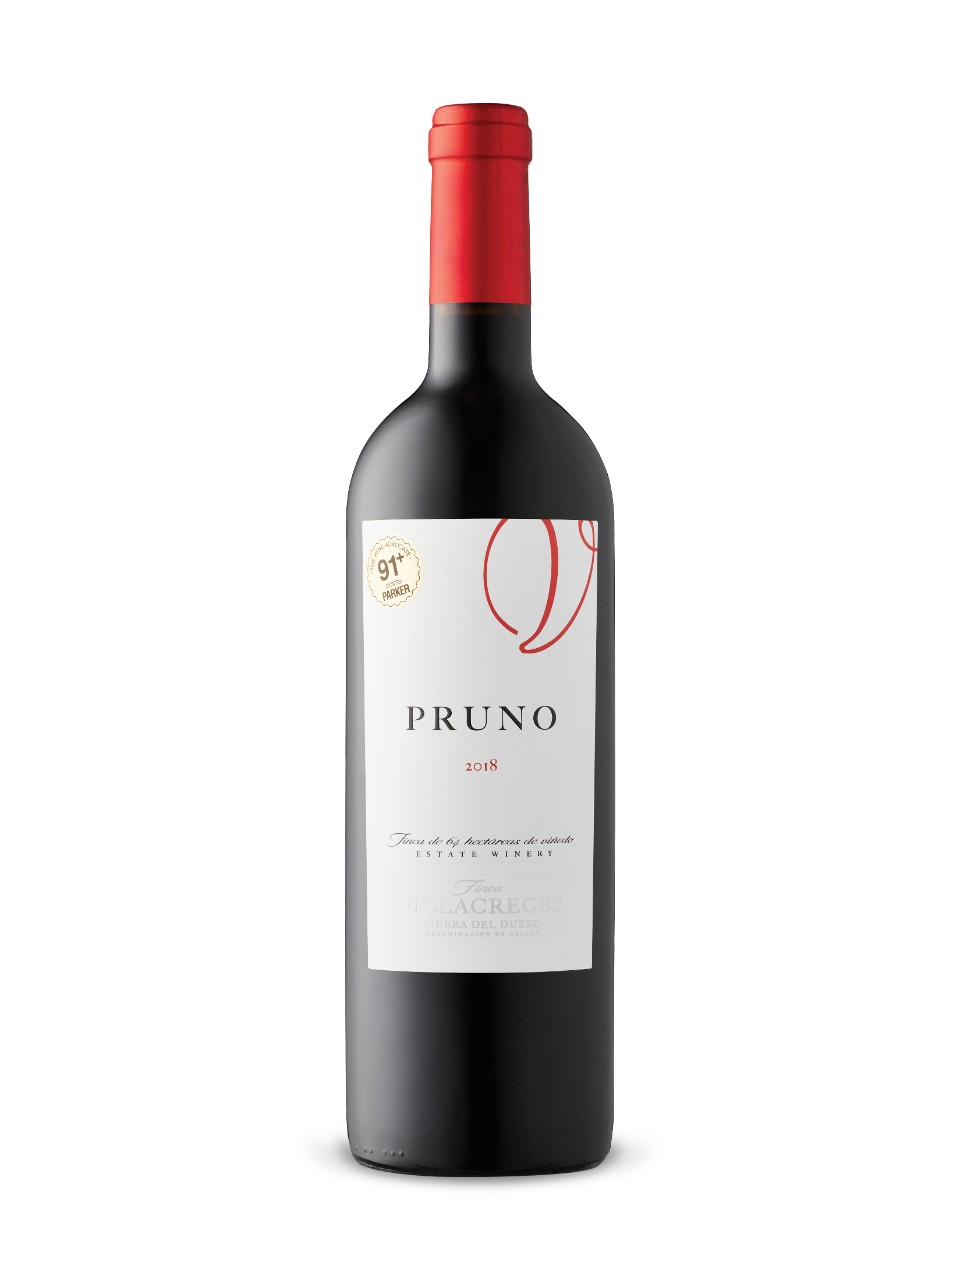 Villacreces Pruno 2018 from LCBO